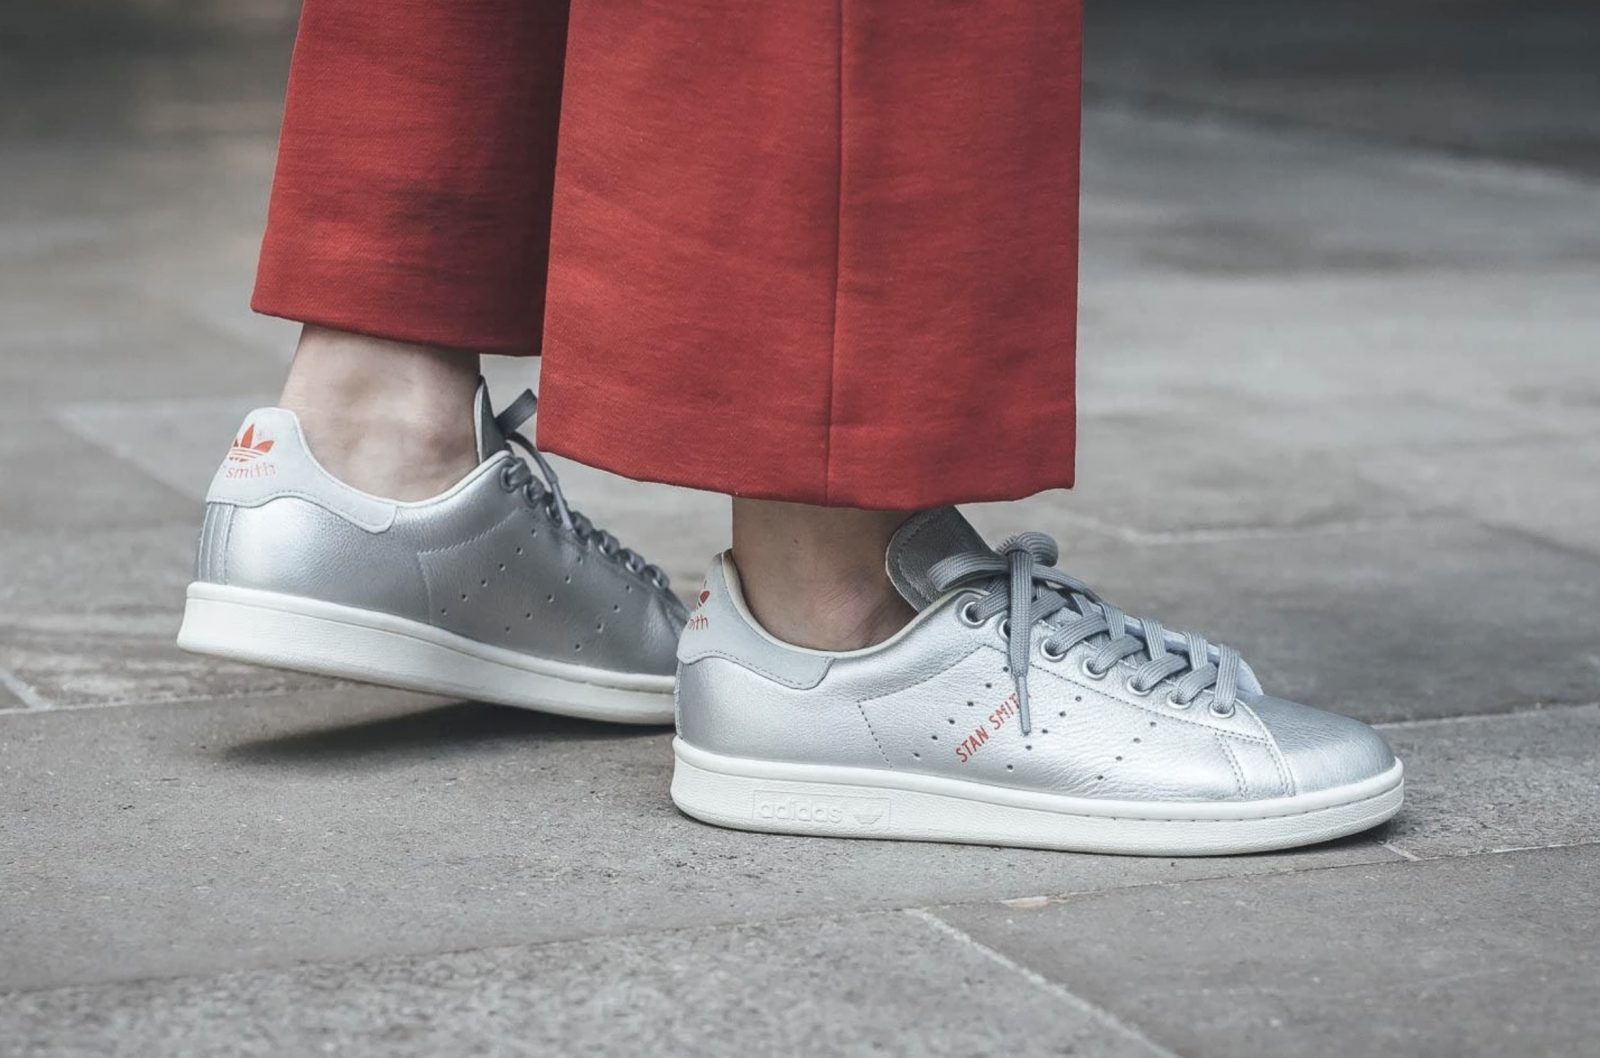 Switch Up Your Rotation With These Metallic Silver adidas Stan Smiths